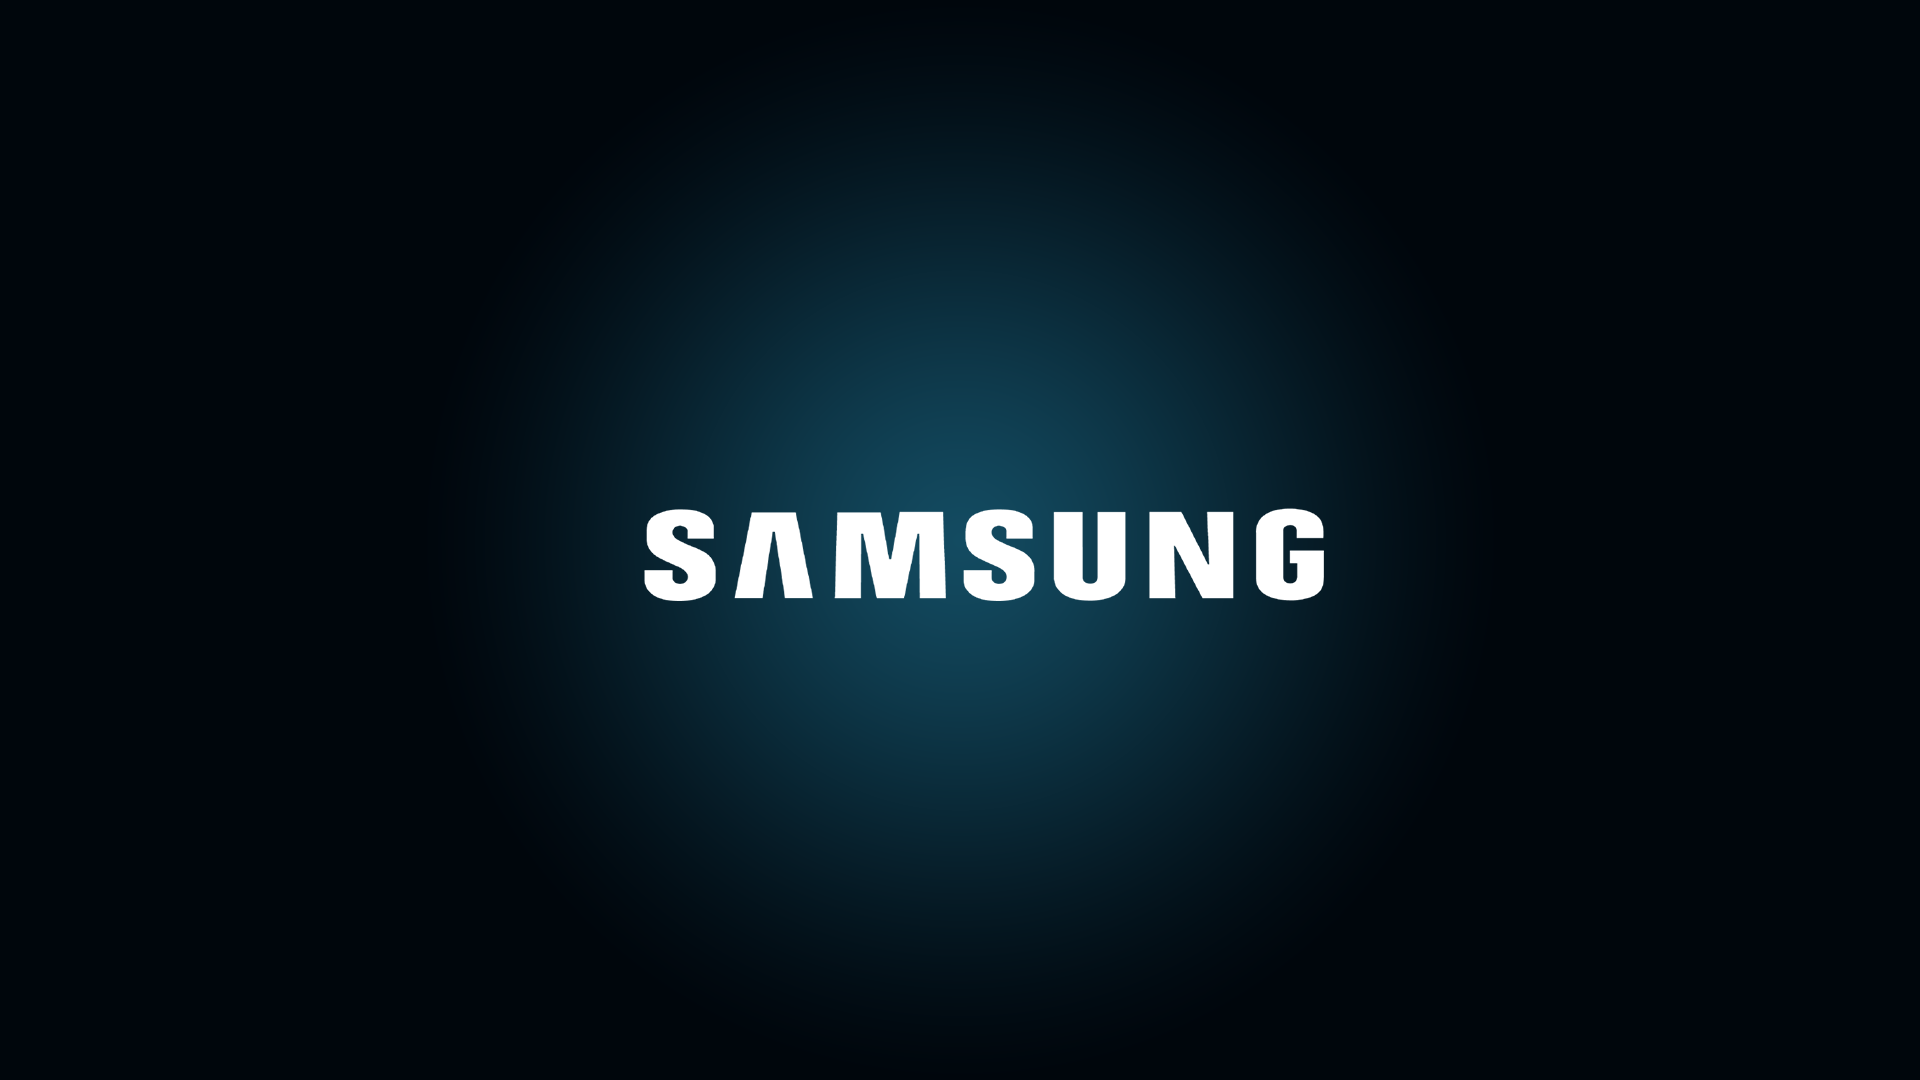 samsung-computer-hd-wallpaper-1920x1080-10694